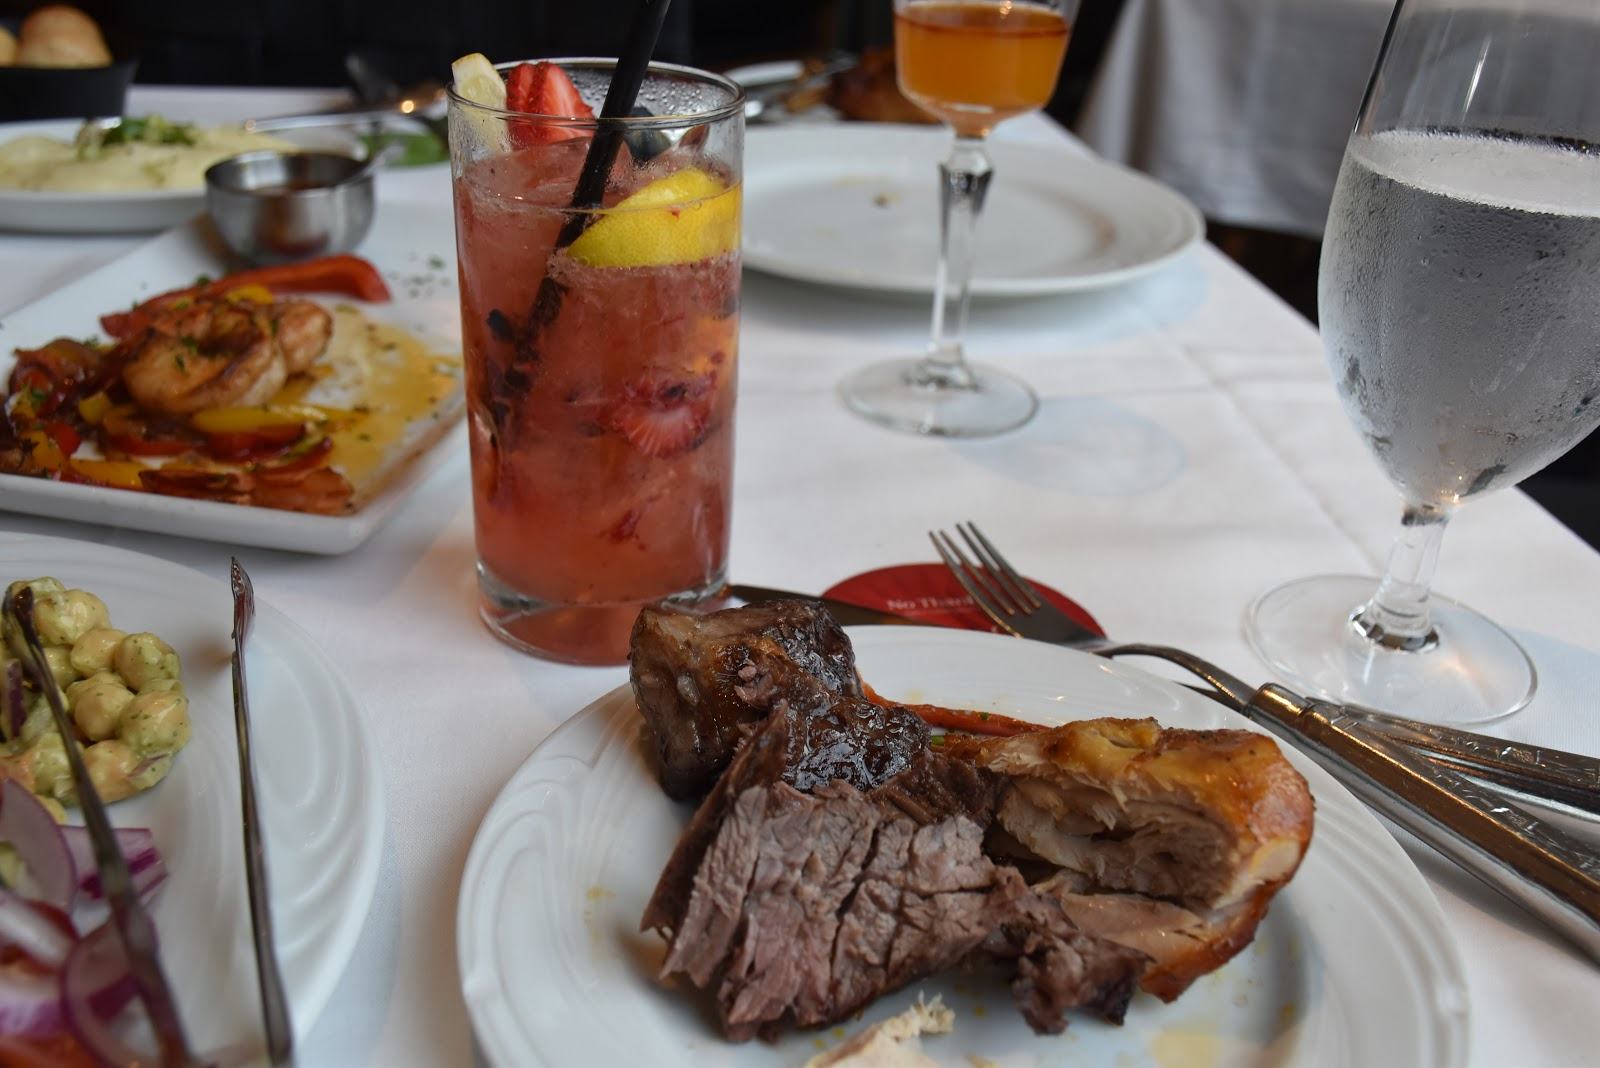 Tasting the Fall Menu and Full Churrasco Experience at Fogo de Chao Dunwoody